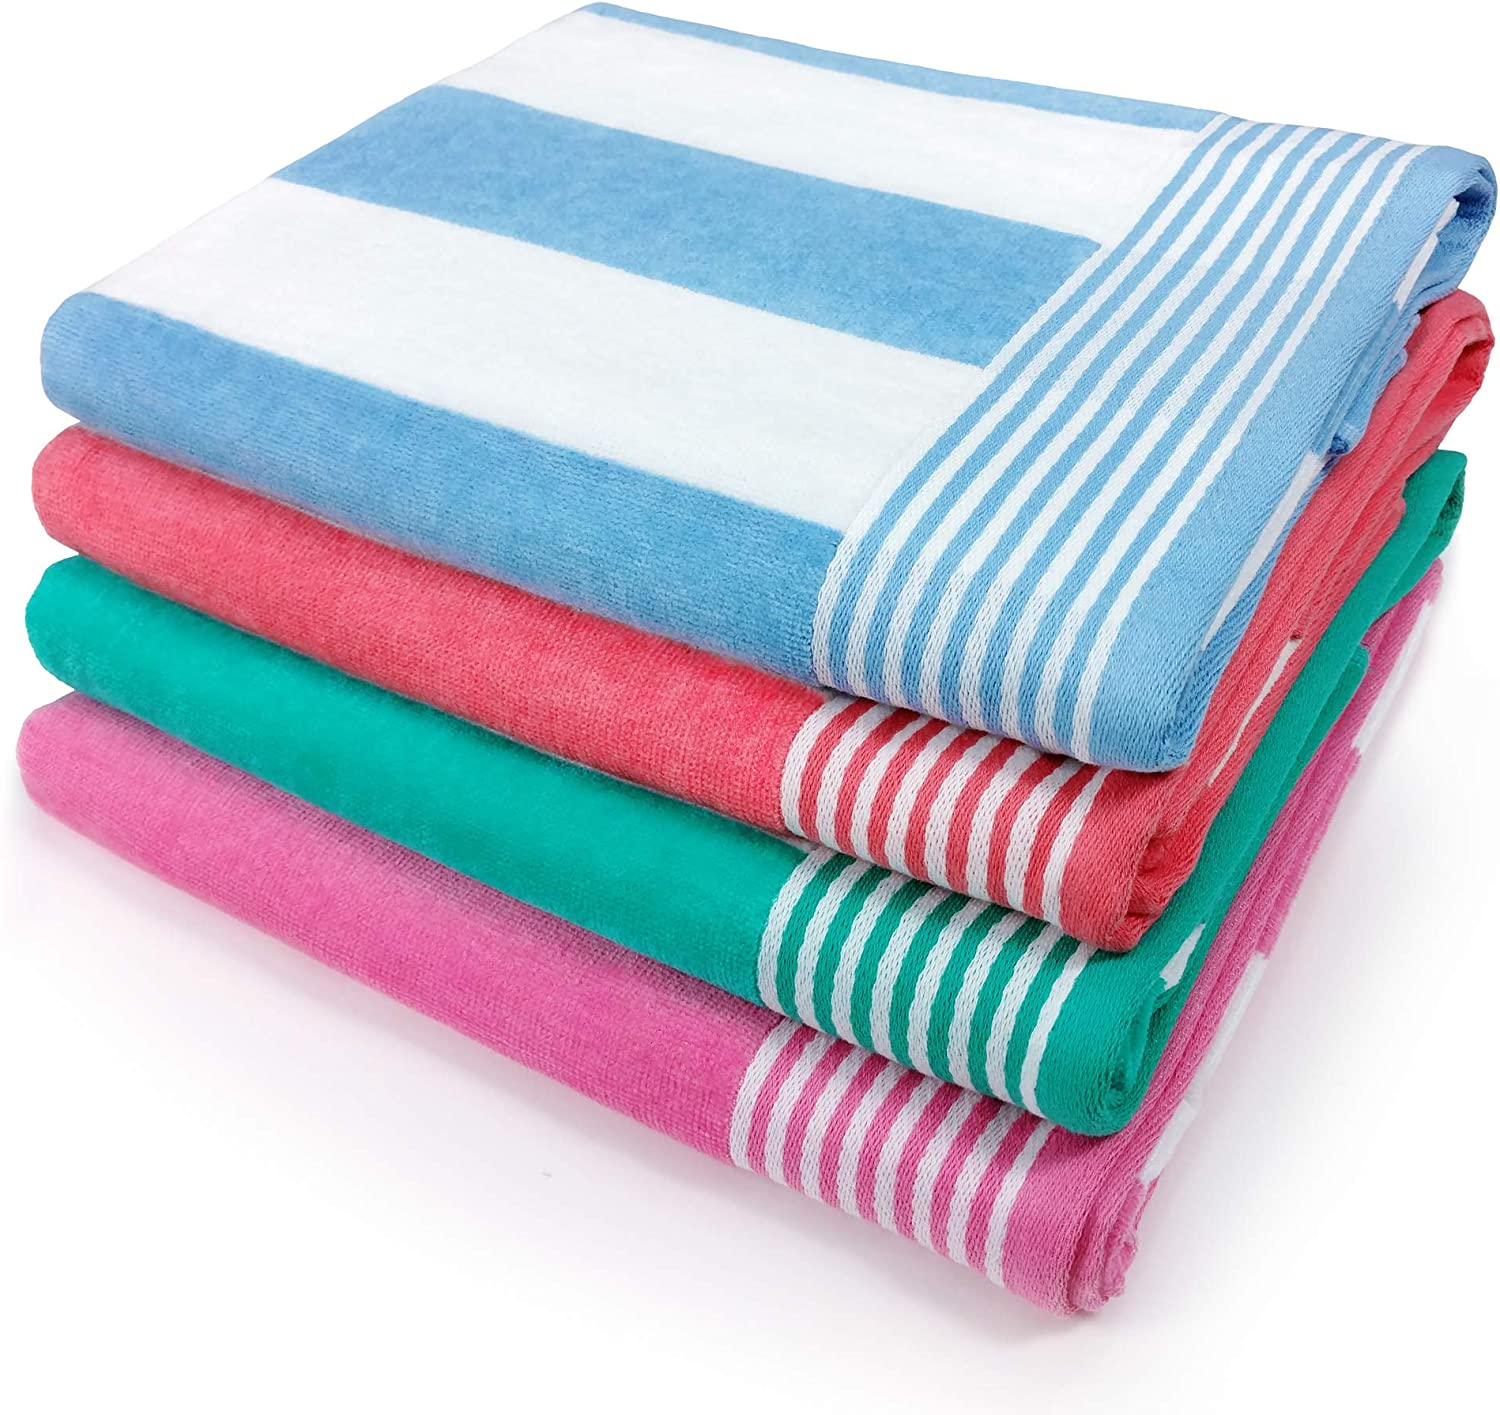 Kaufman - Velour Cabana Towels 4-Pack